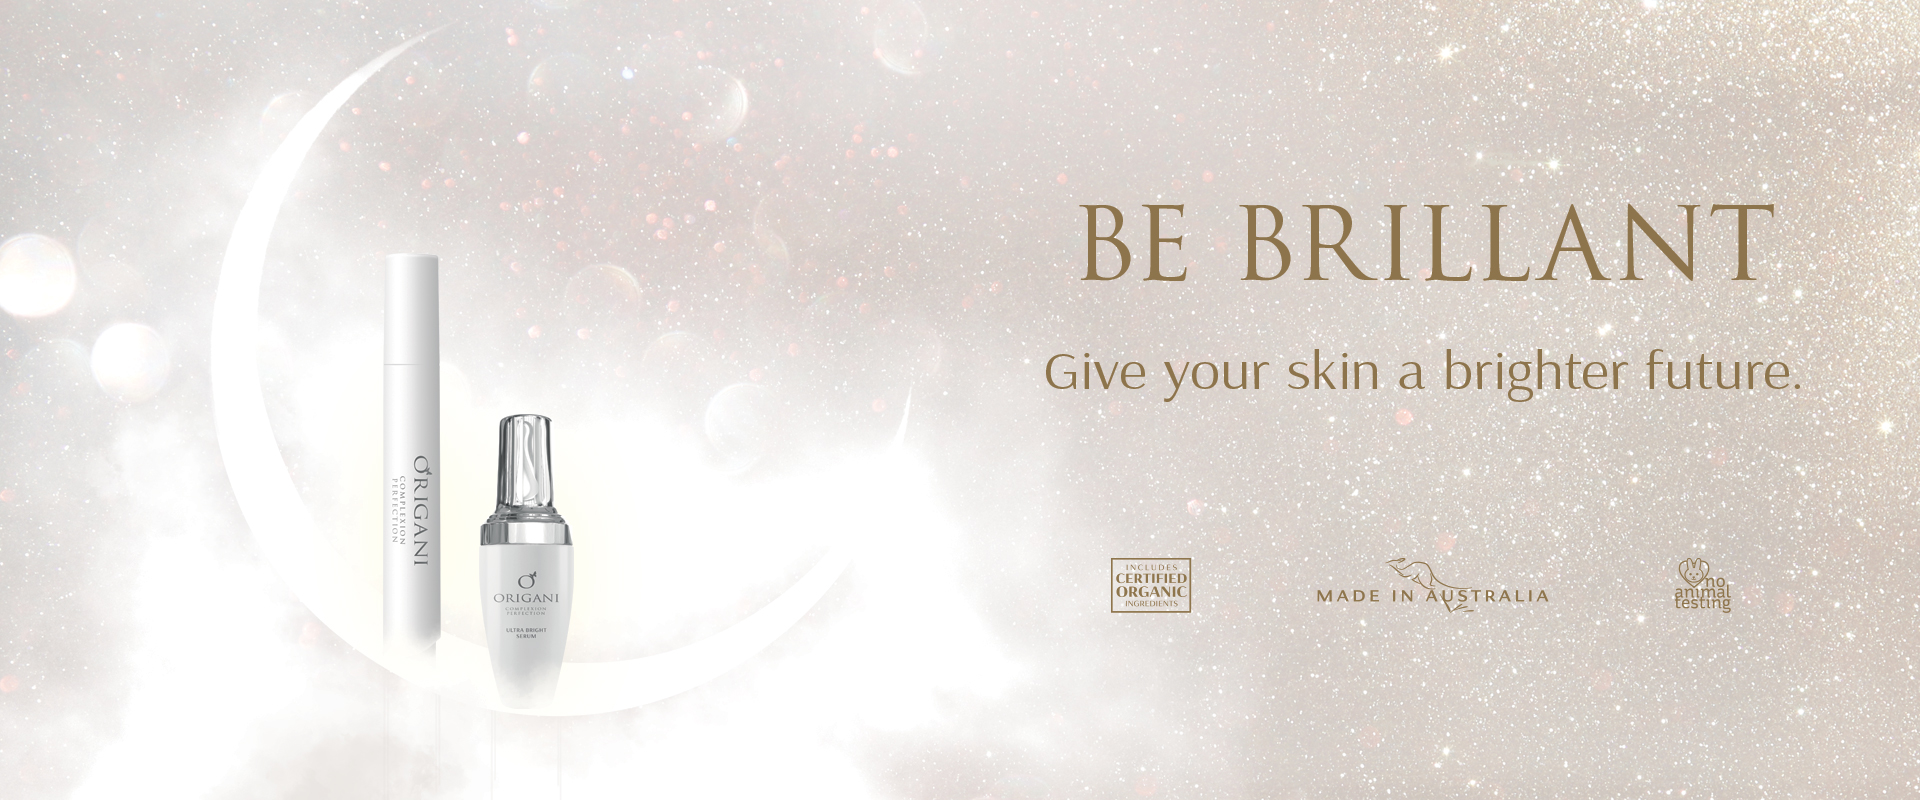 Origani-Complexion-Perfection-Banner-1920x800px